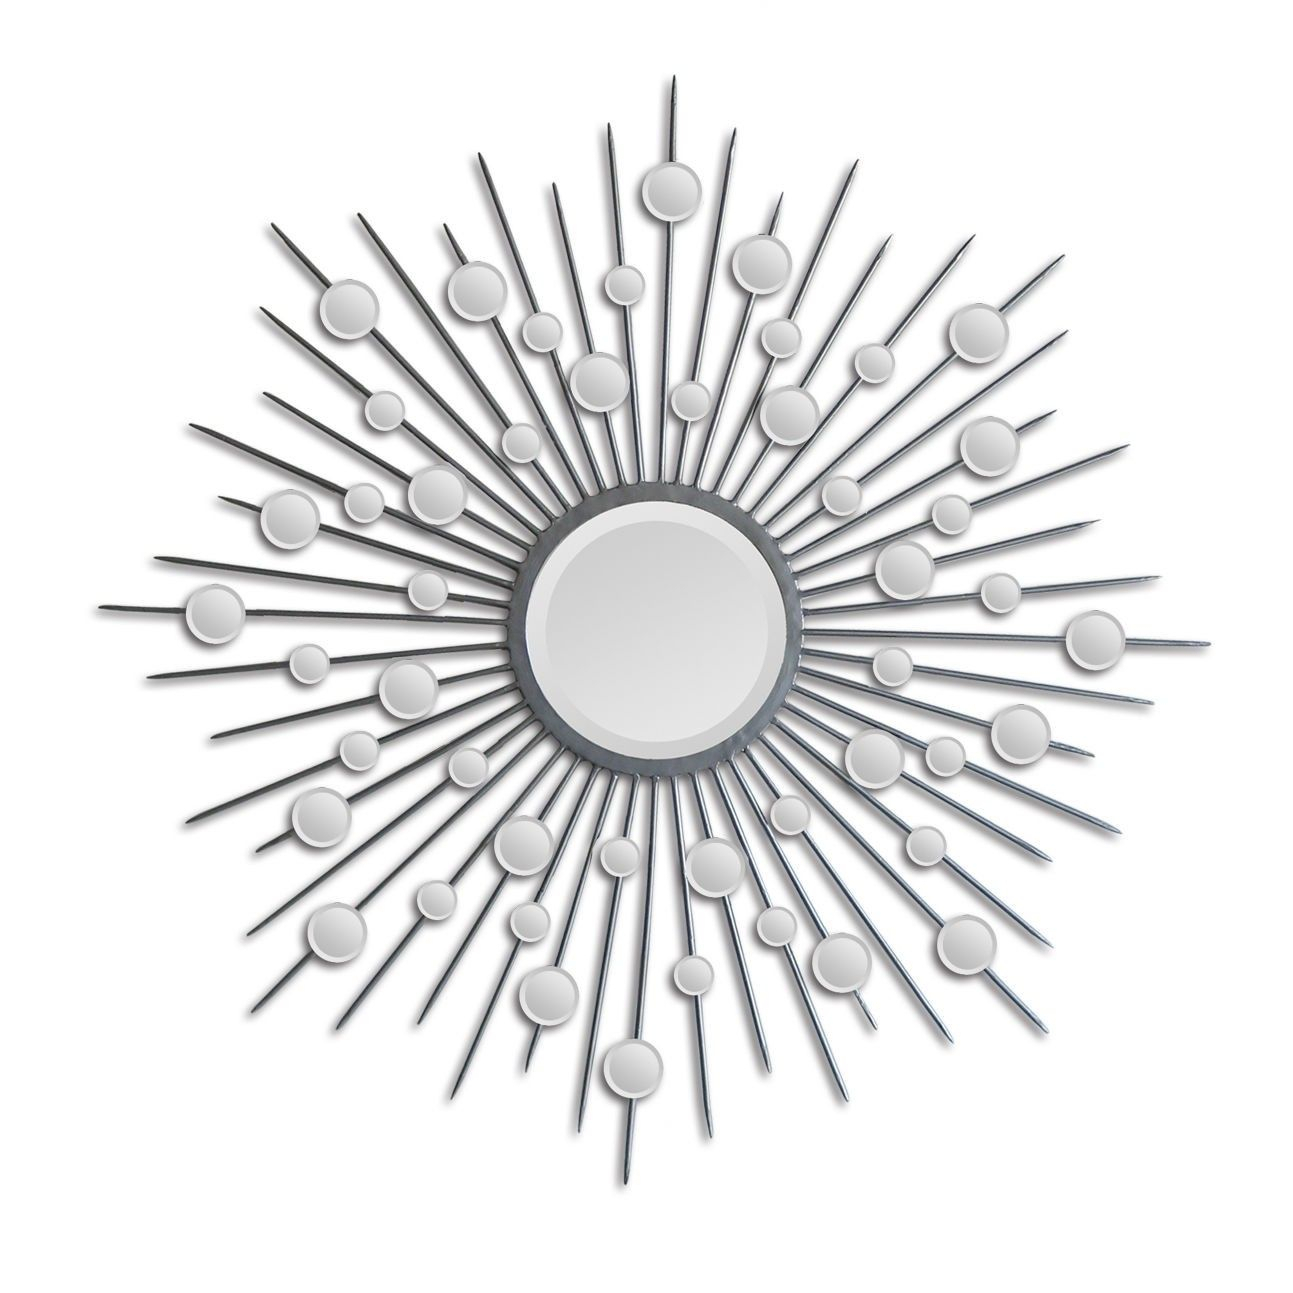 Ren Wil Starburst Mirror In Silver – Mt798 | My New Pad In With Orion Starburst Wall Mirrors (Image 11 of 20)